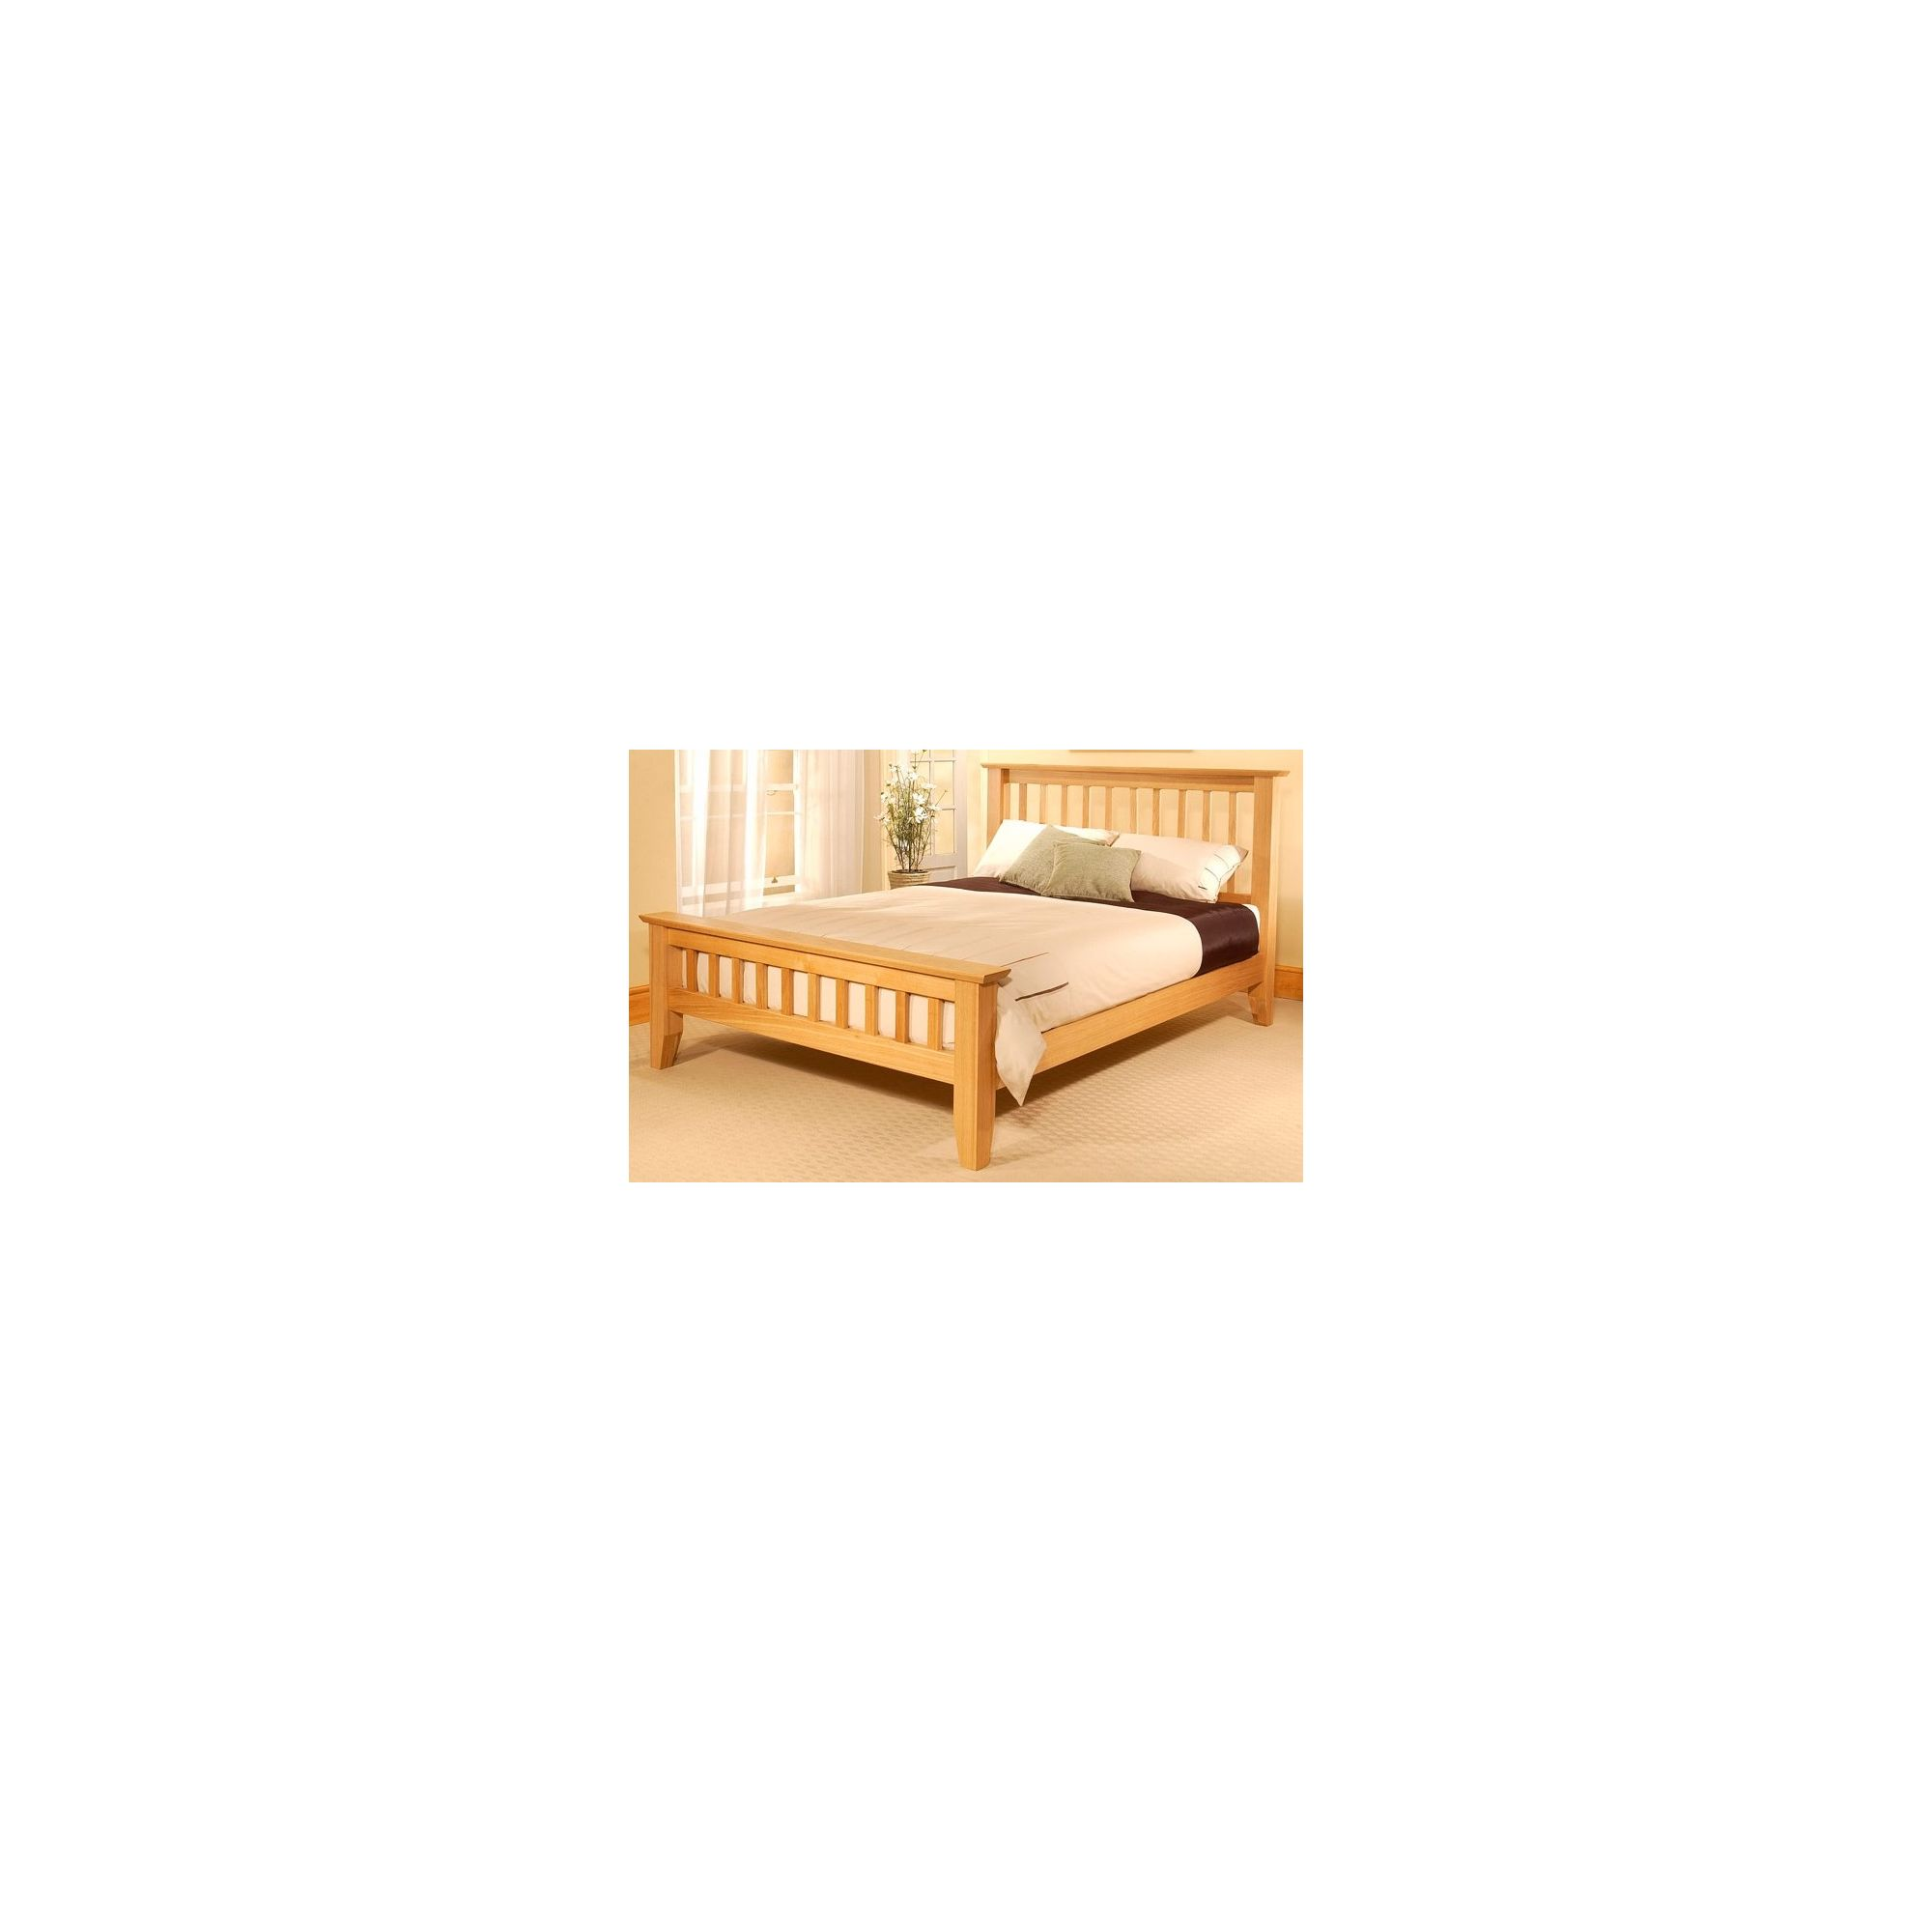 Limelight Phoebe Bed Frame - Double at Tesco Direct